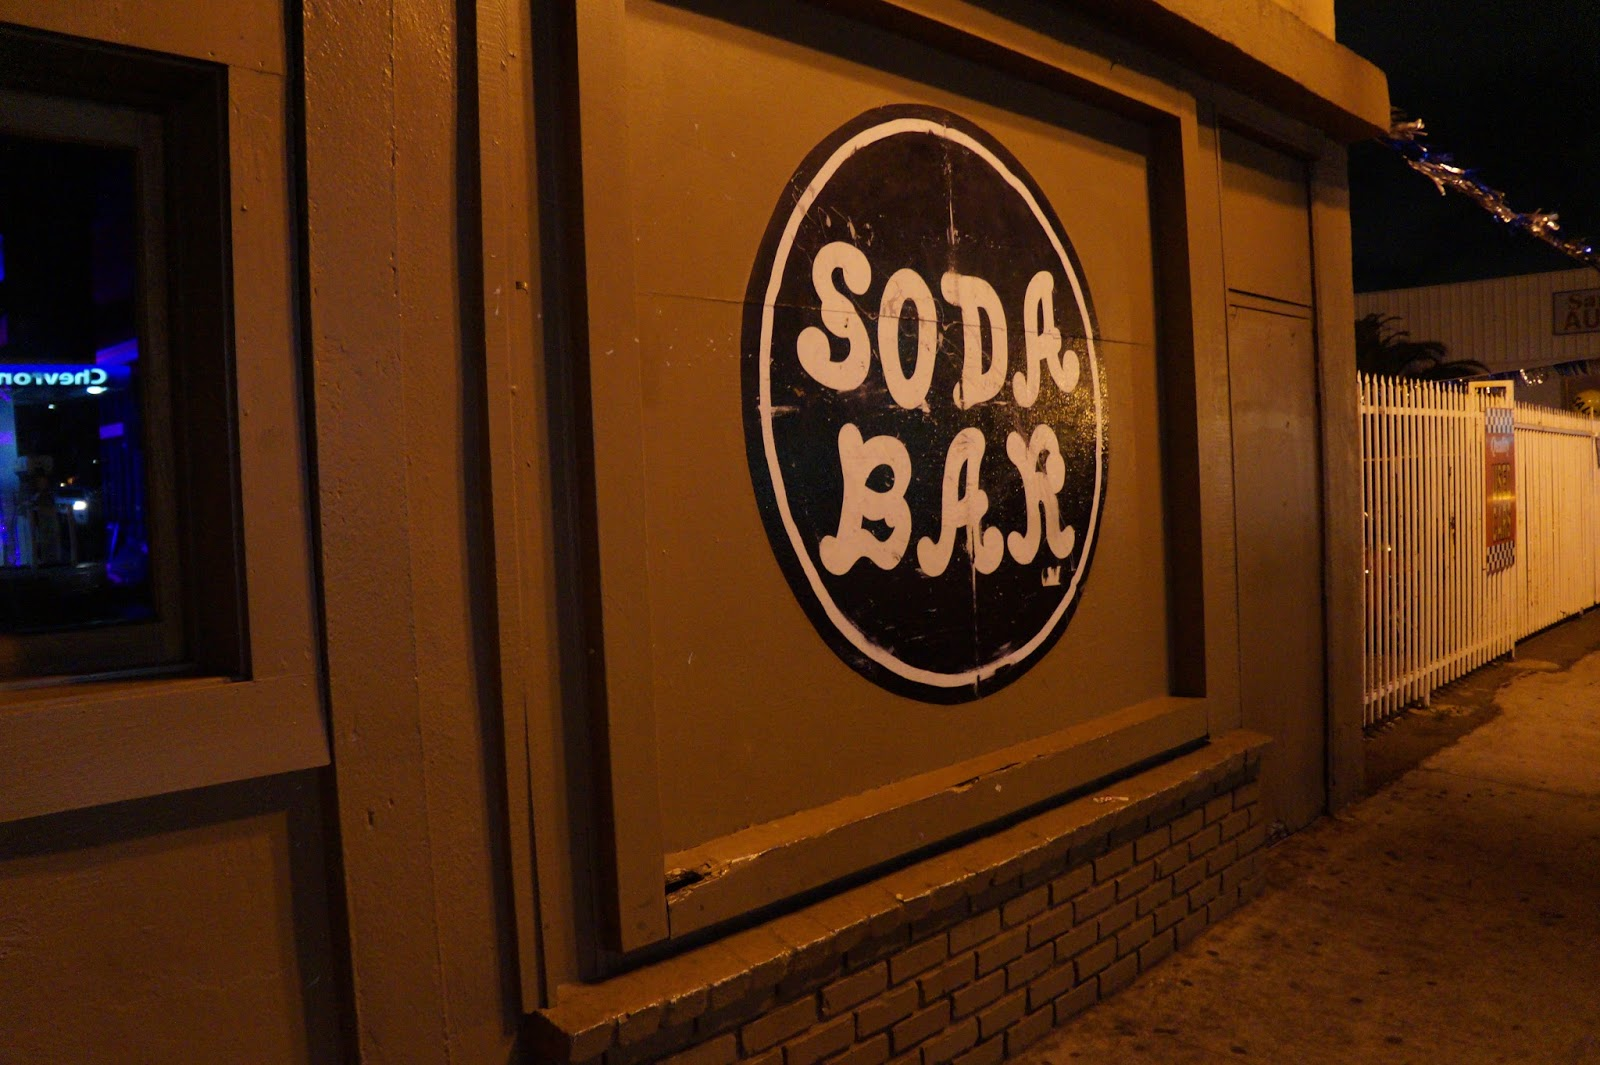 soda bar, san diego, susto